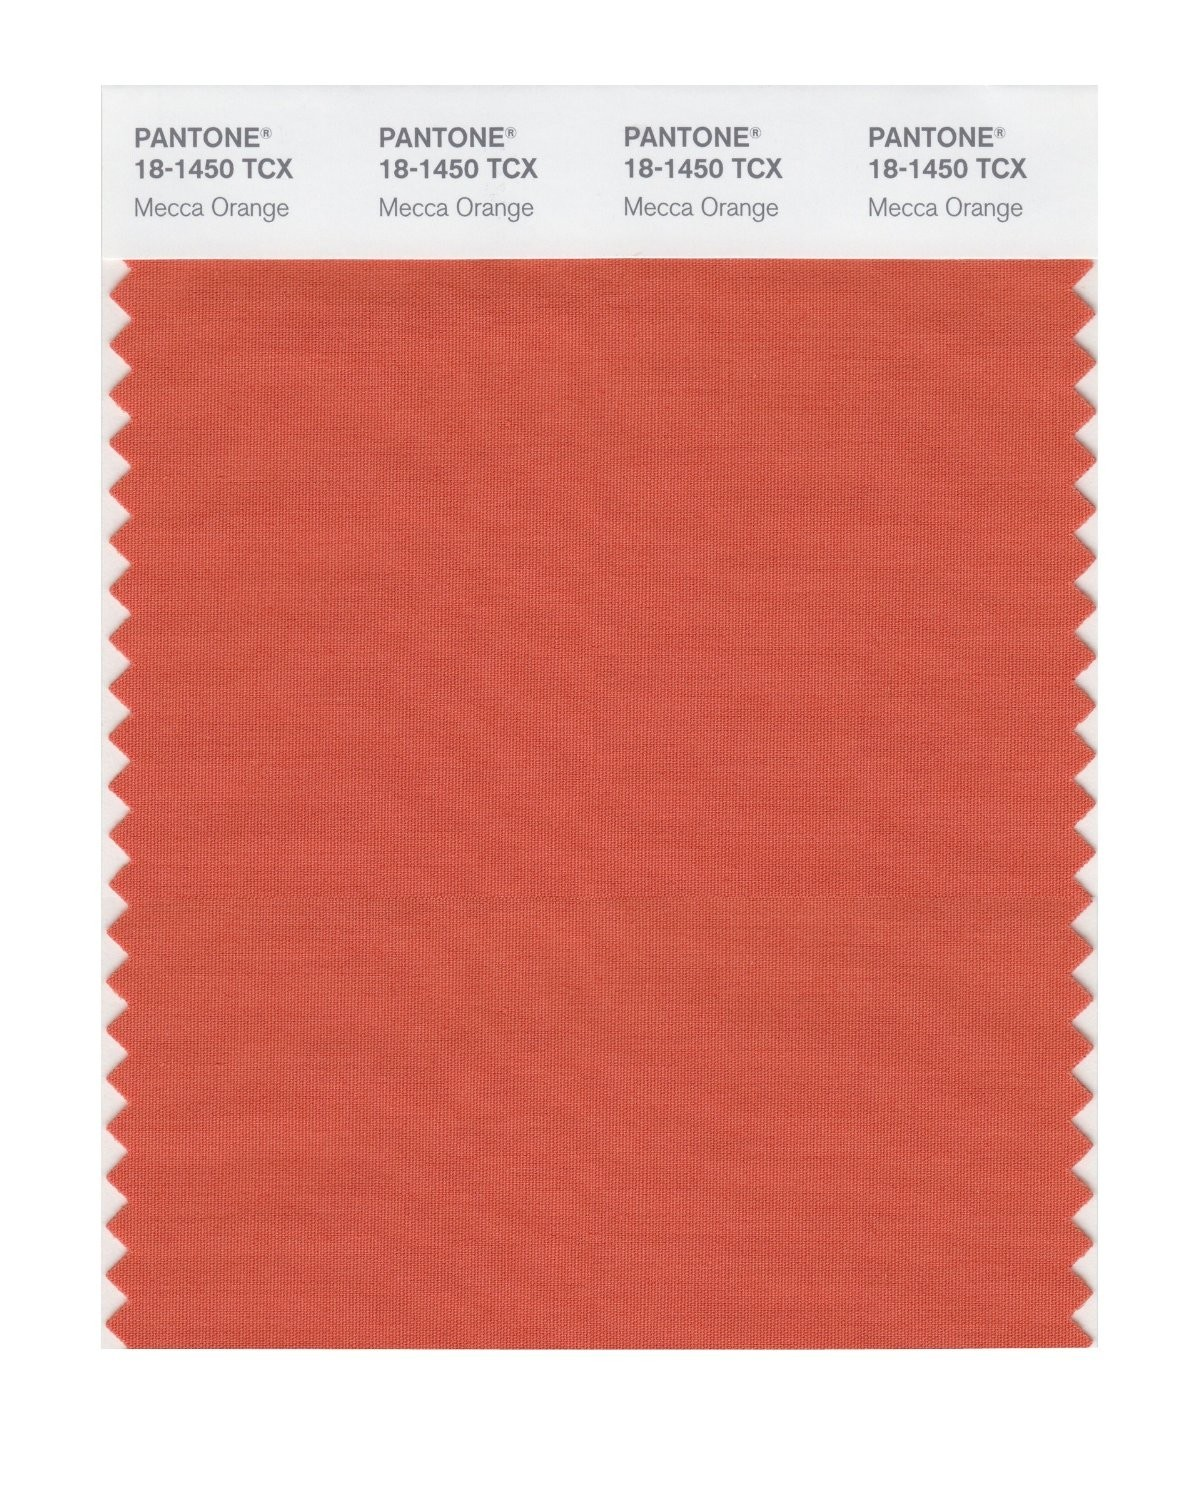 Pantone 18-1450 TCX Swatch Card Mecca Orange